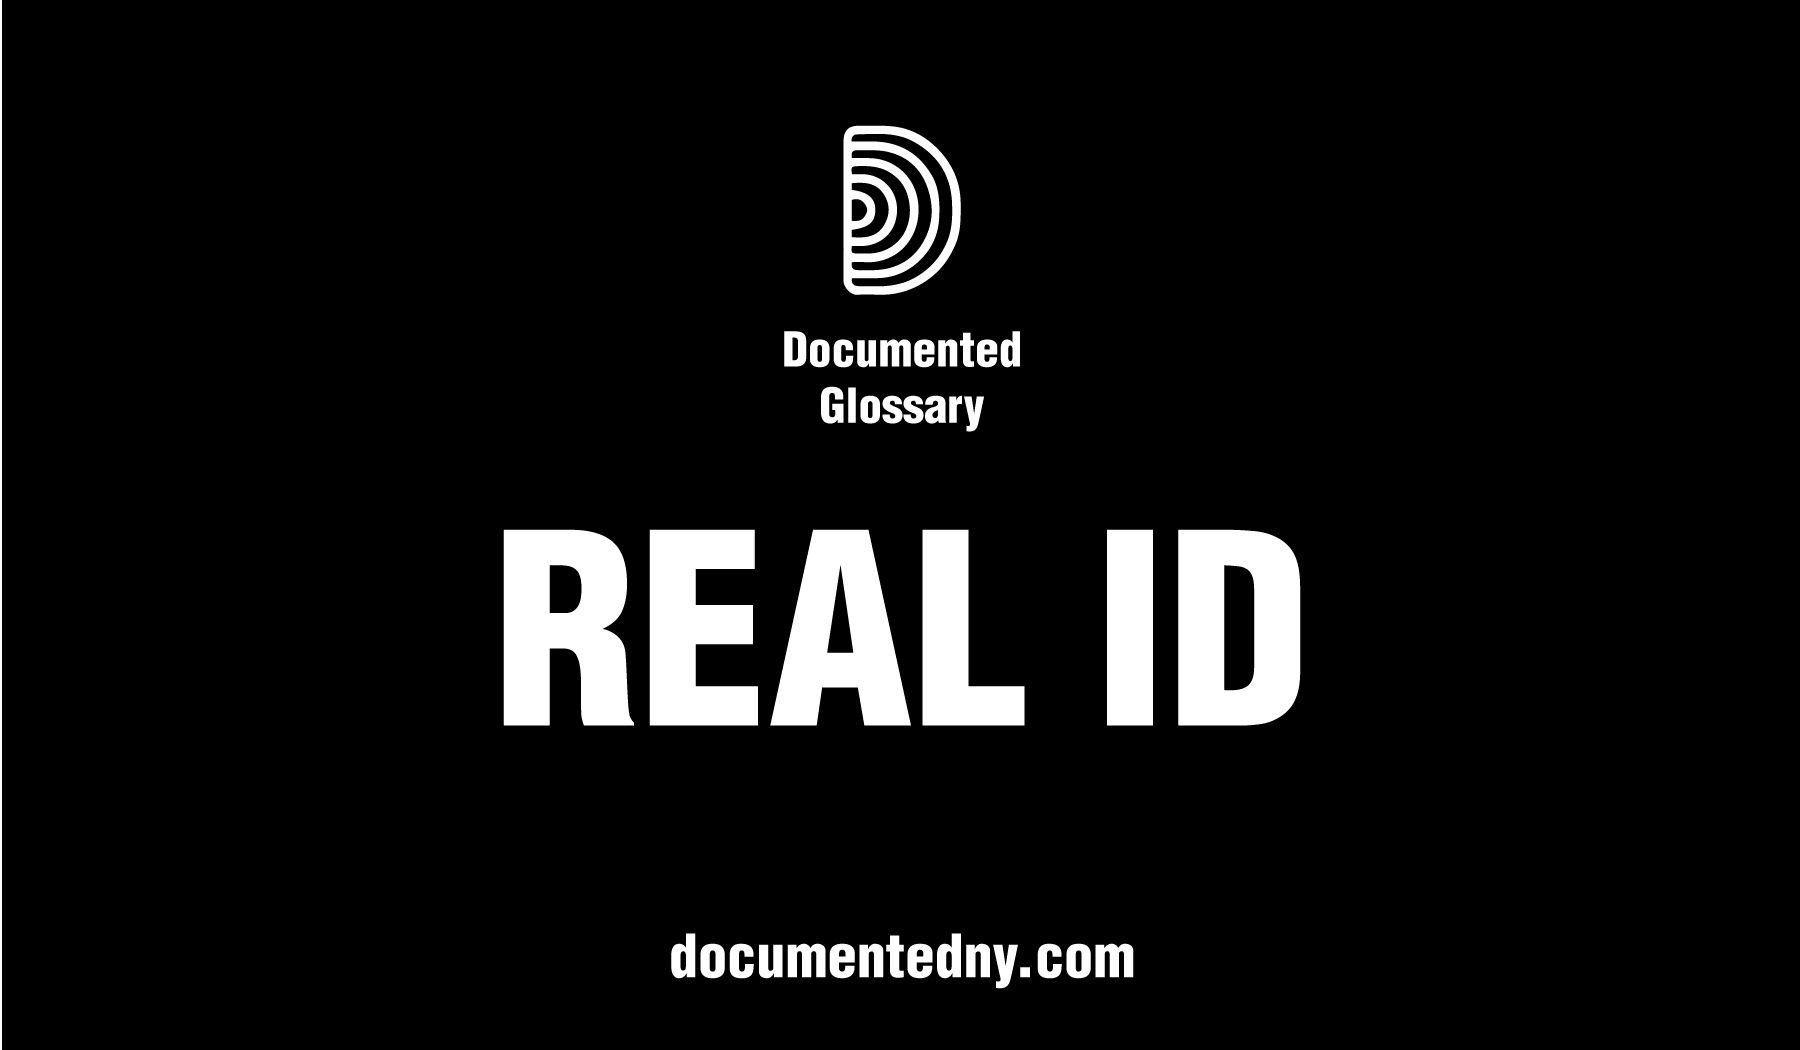 A Real ID is a DMV issued driver's license, learner permit or non-driver ID that is federally compliant, and will be required after May 2023 to board domestic flights or enter federal buildings.